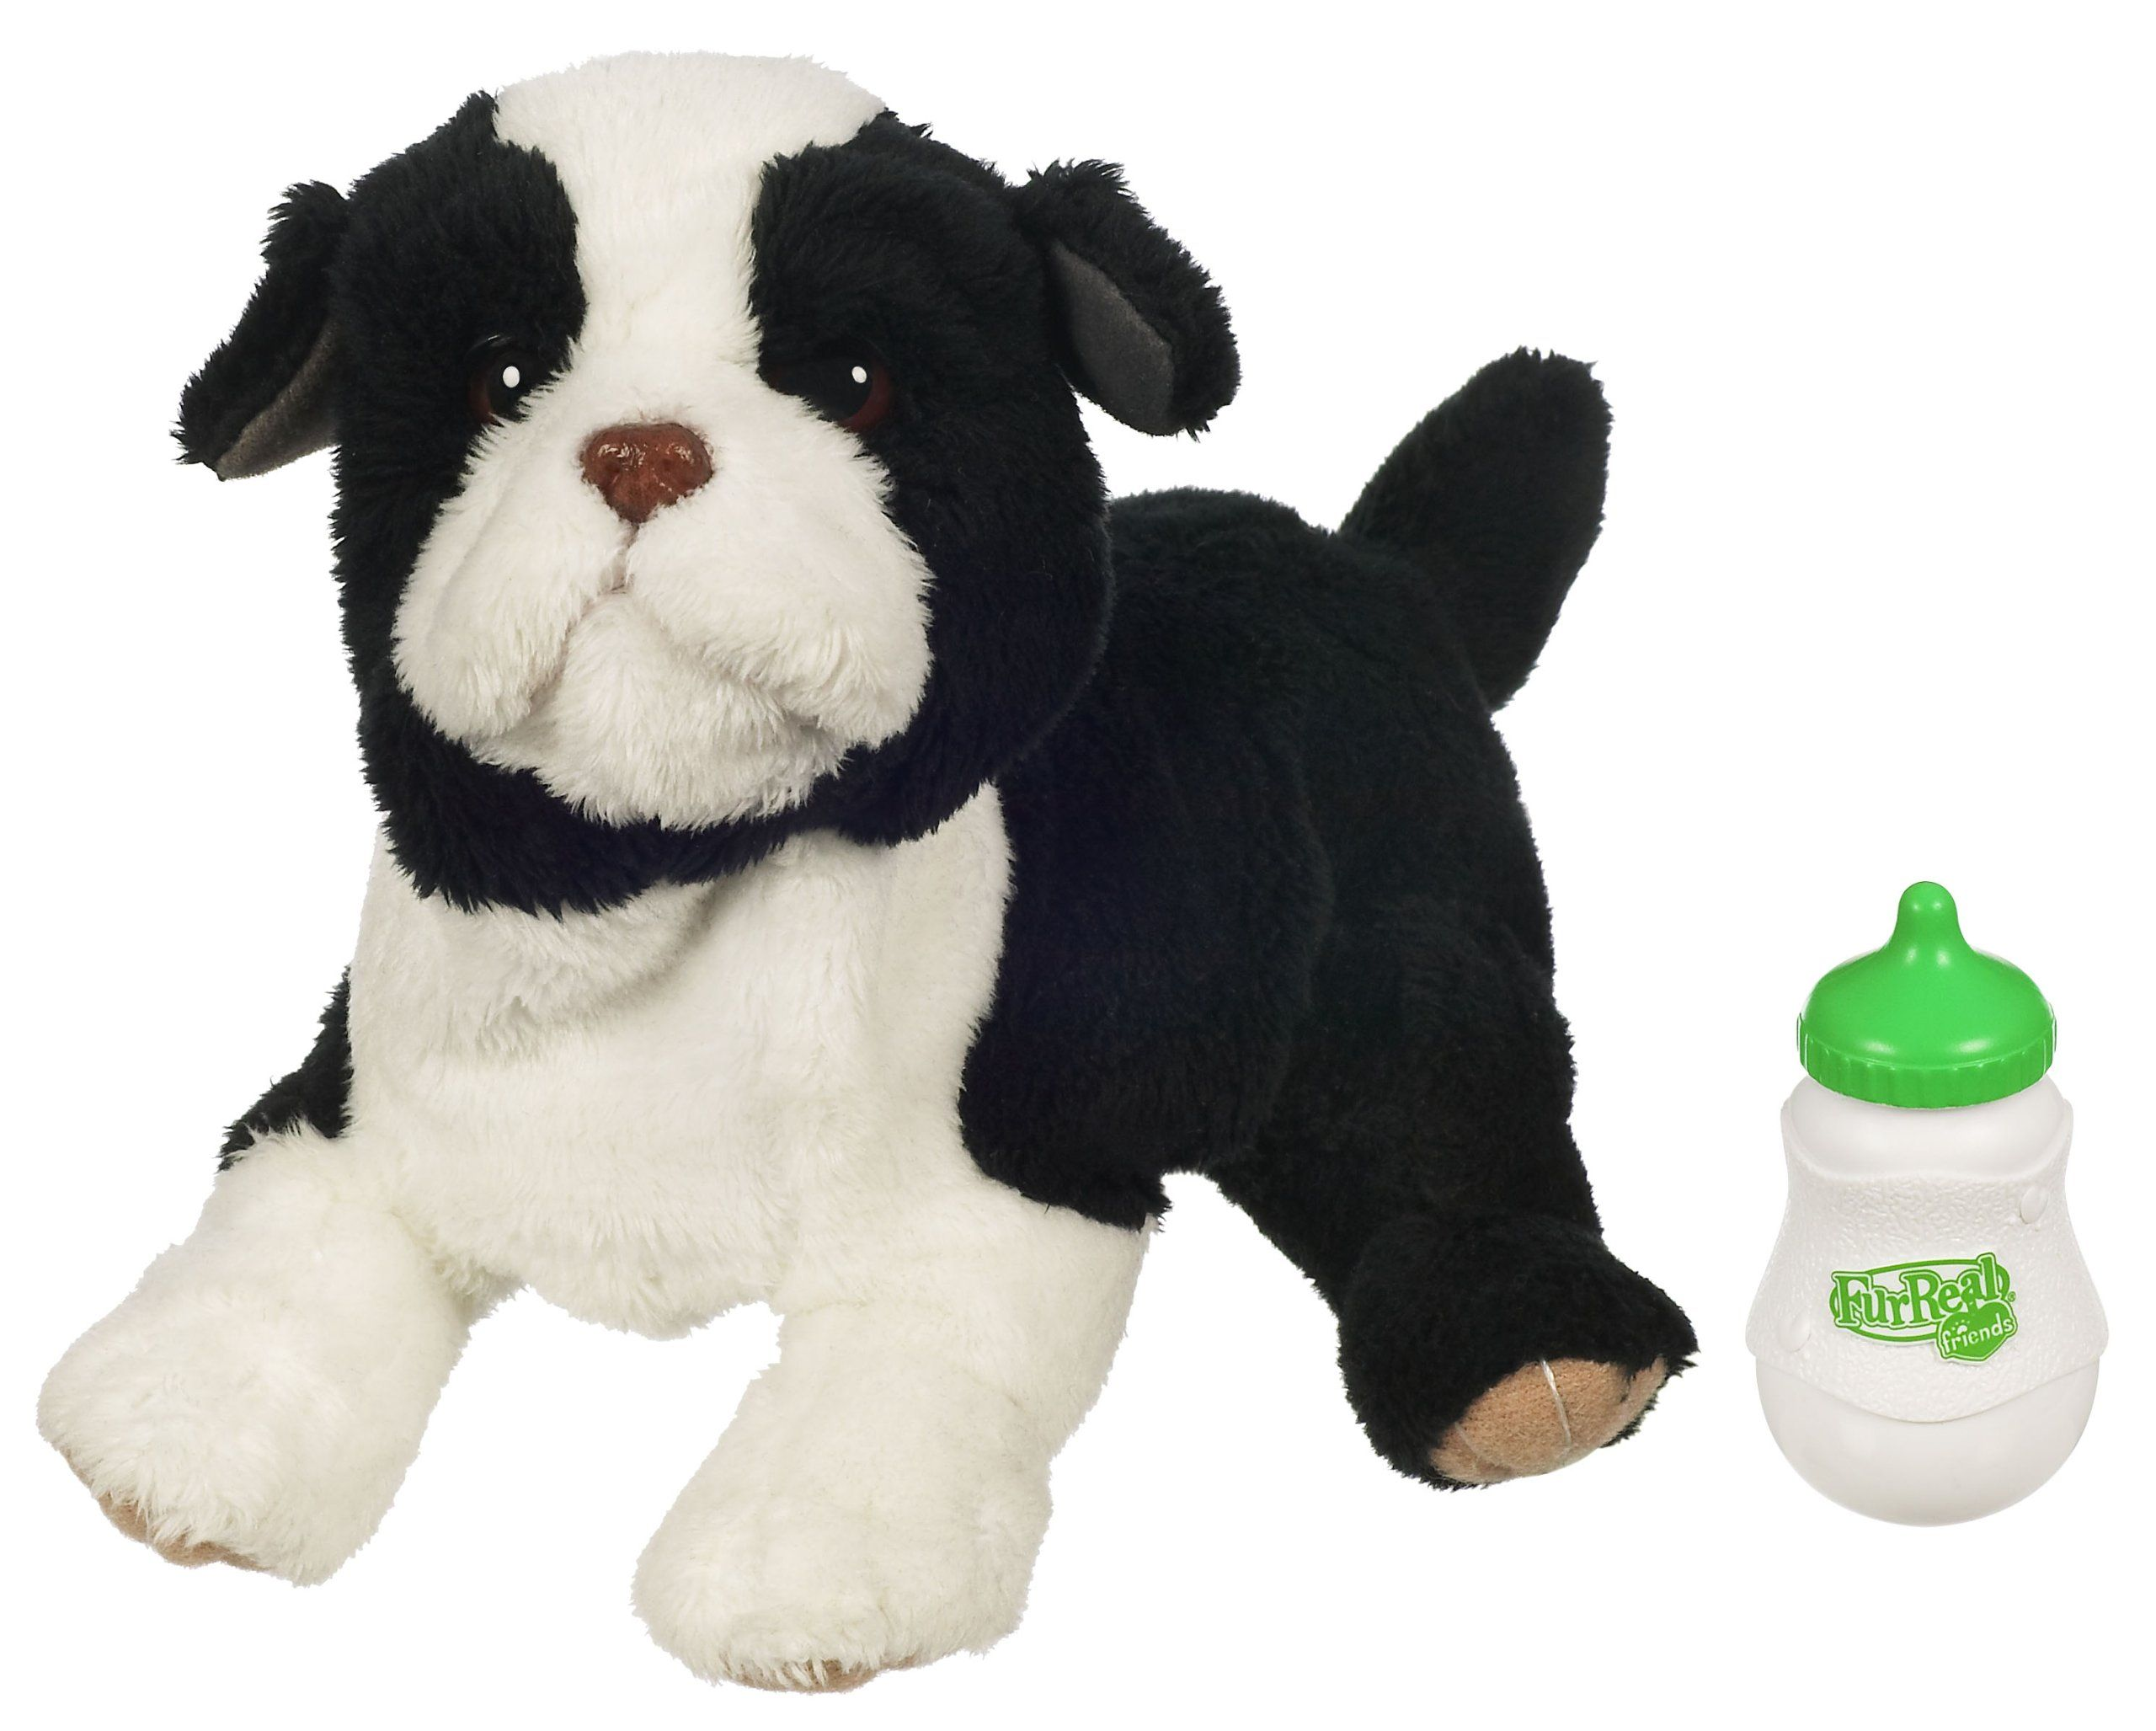 Furreal Newborn Border Collie Puppy The Puppy Barks And Wags His Tail When You Pet His Back Puppie To Fur Real Friends Collie Puppies Border Collie Puppies